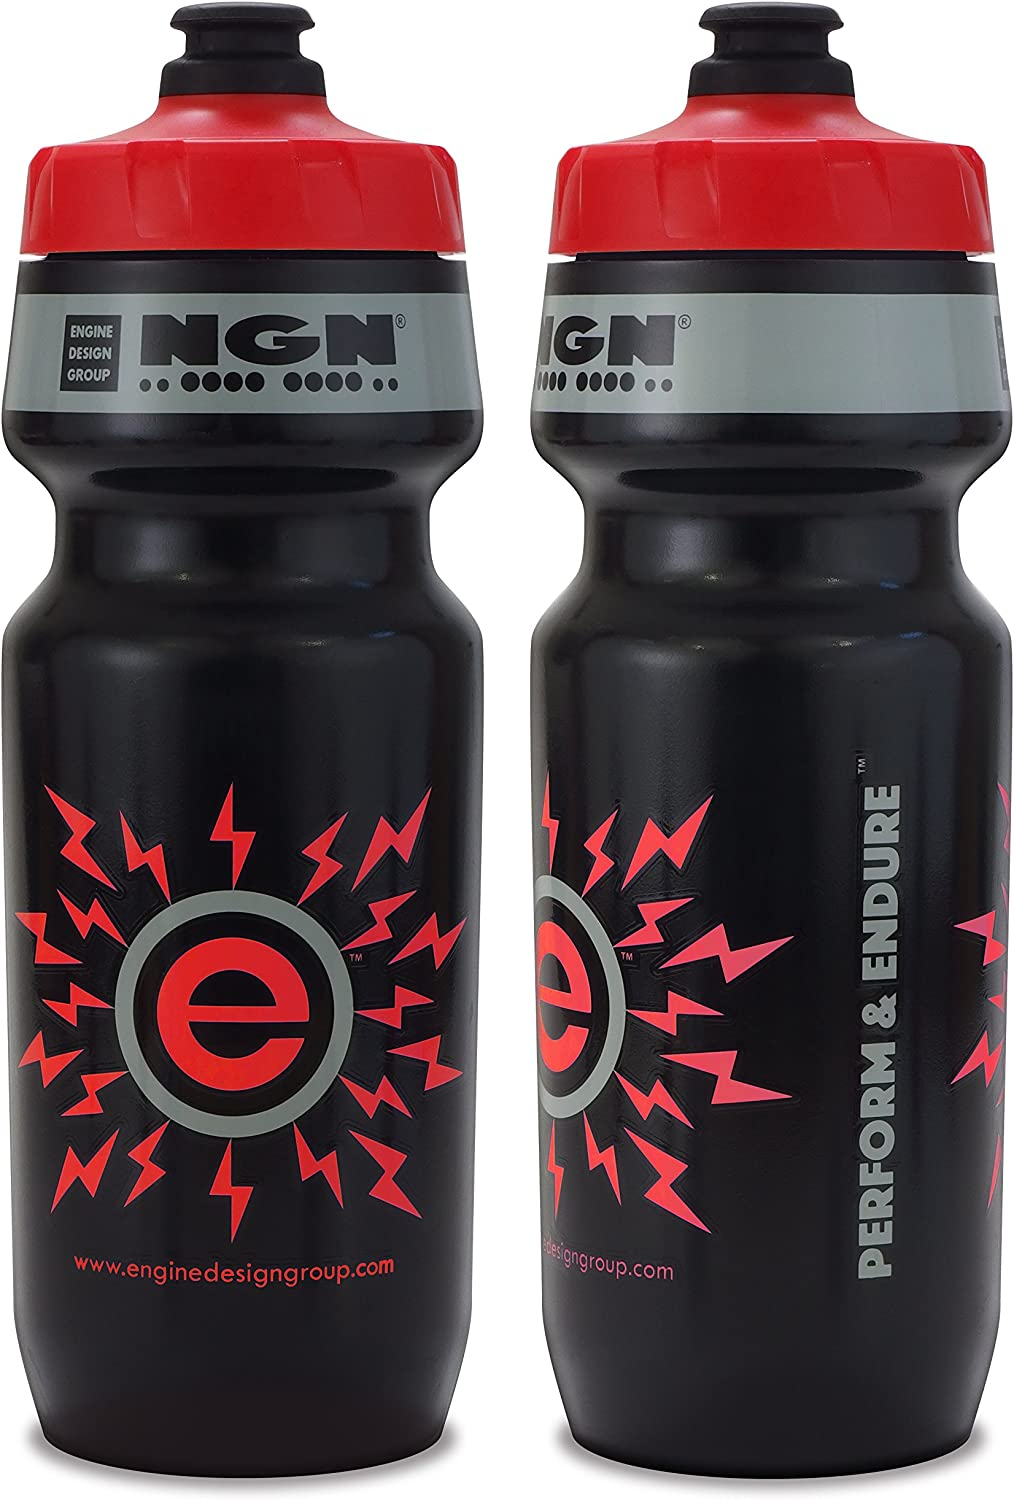 Engine Design Group NGN Sport – High Performance Bicycle Bike Water Bottle for Triathlon, MTB, and Road Cycling – 24 oz Black Red 2-Pack